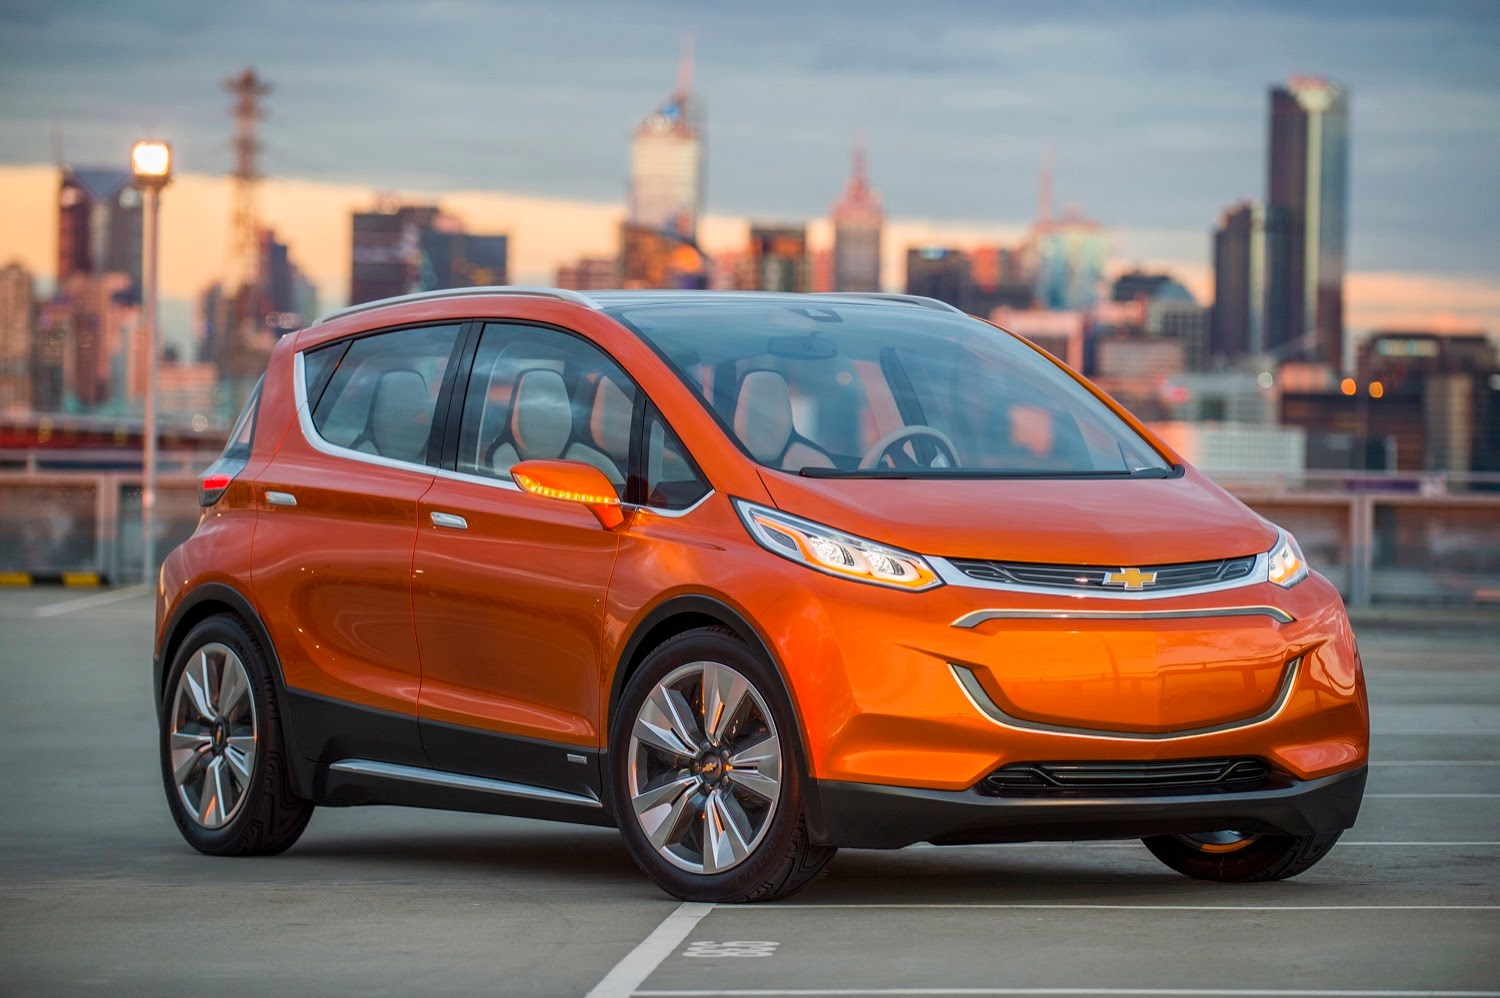 This is the Chevrolet Bolt EV Concept Vehicle